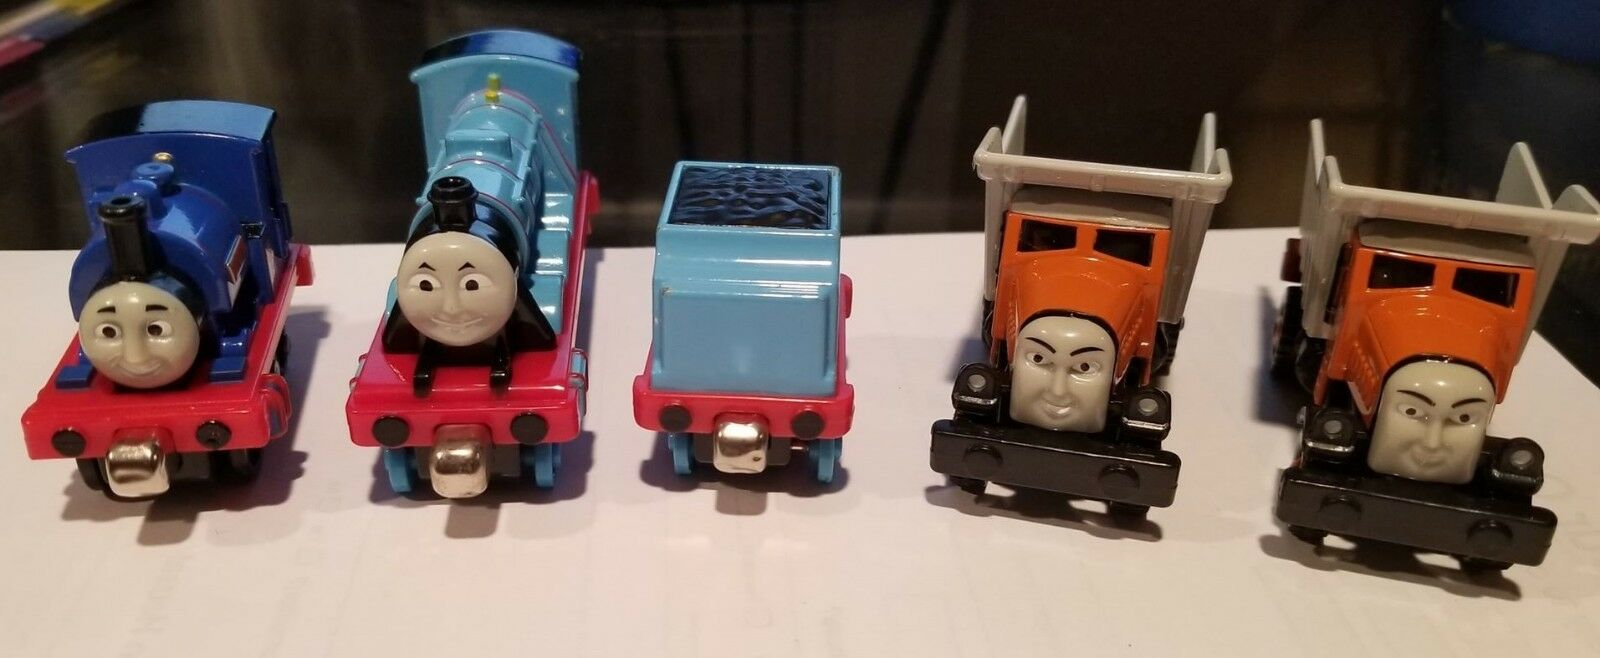 Thomas vänner Max Monty Sir Handel Gordon Metal Train Loose Gift New America säljare